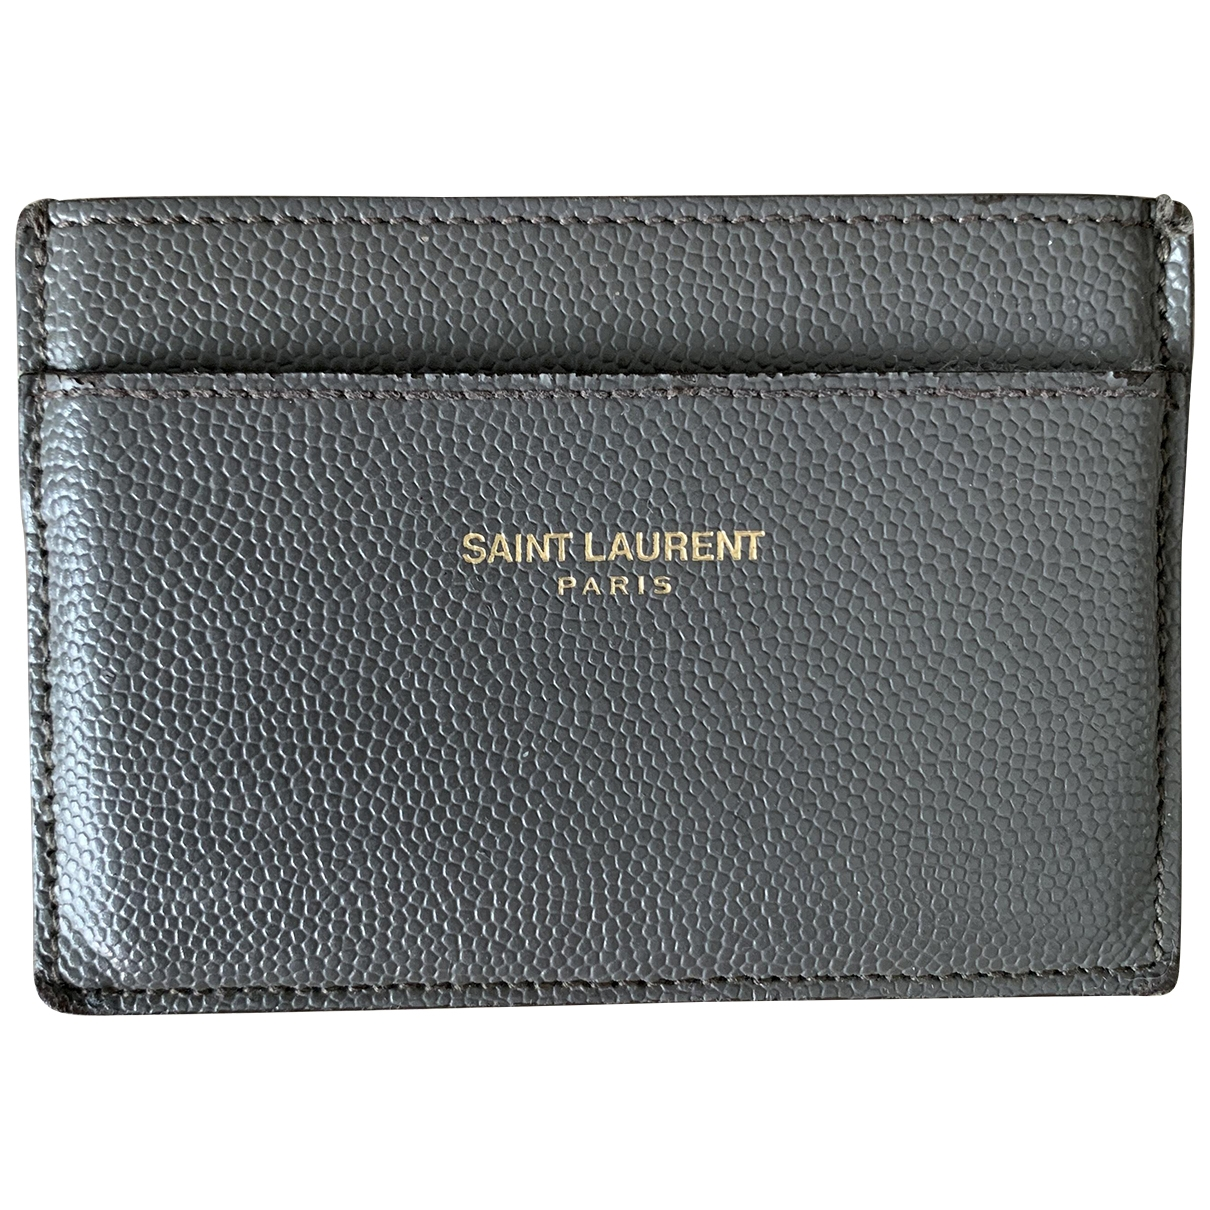 Saint Laurent \N Kleinlederwaren in  Grau Leder